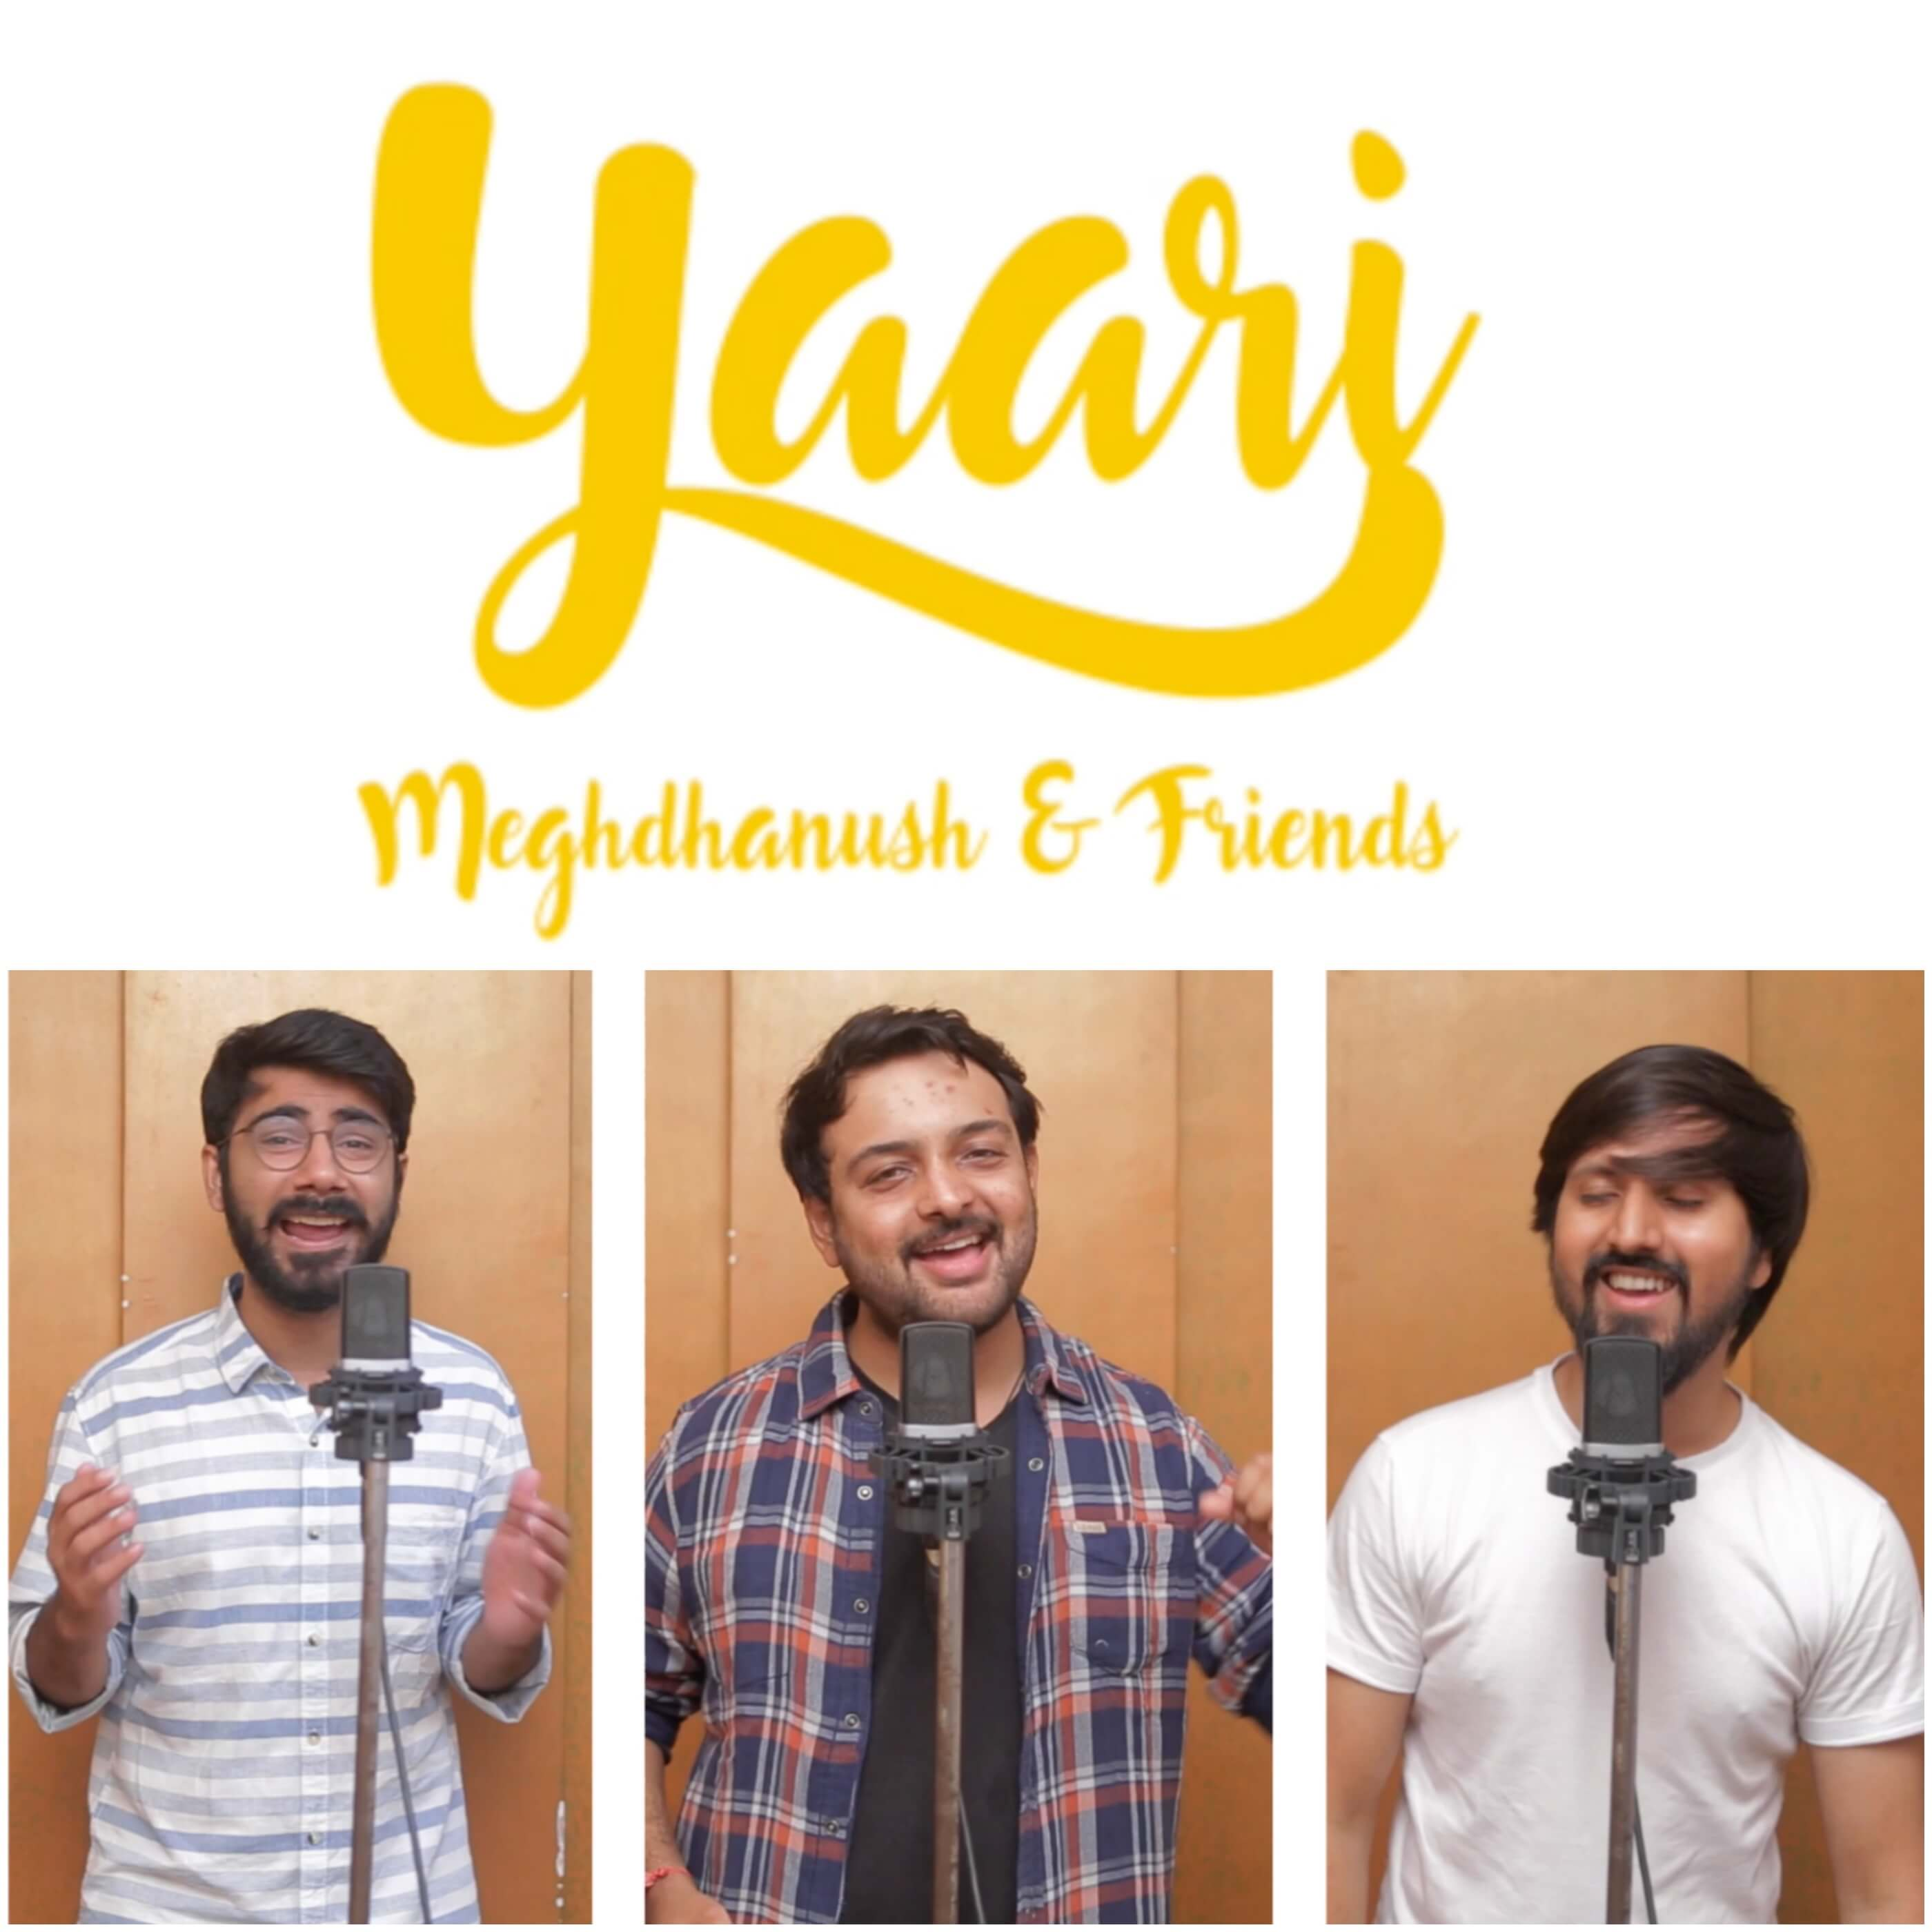 Yaari | Meghdhanush and Friends